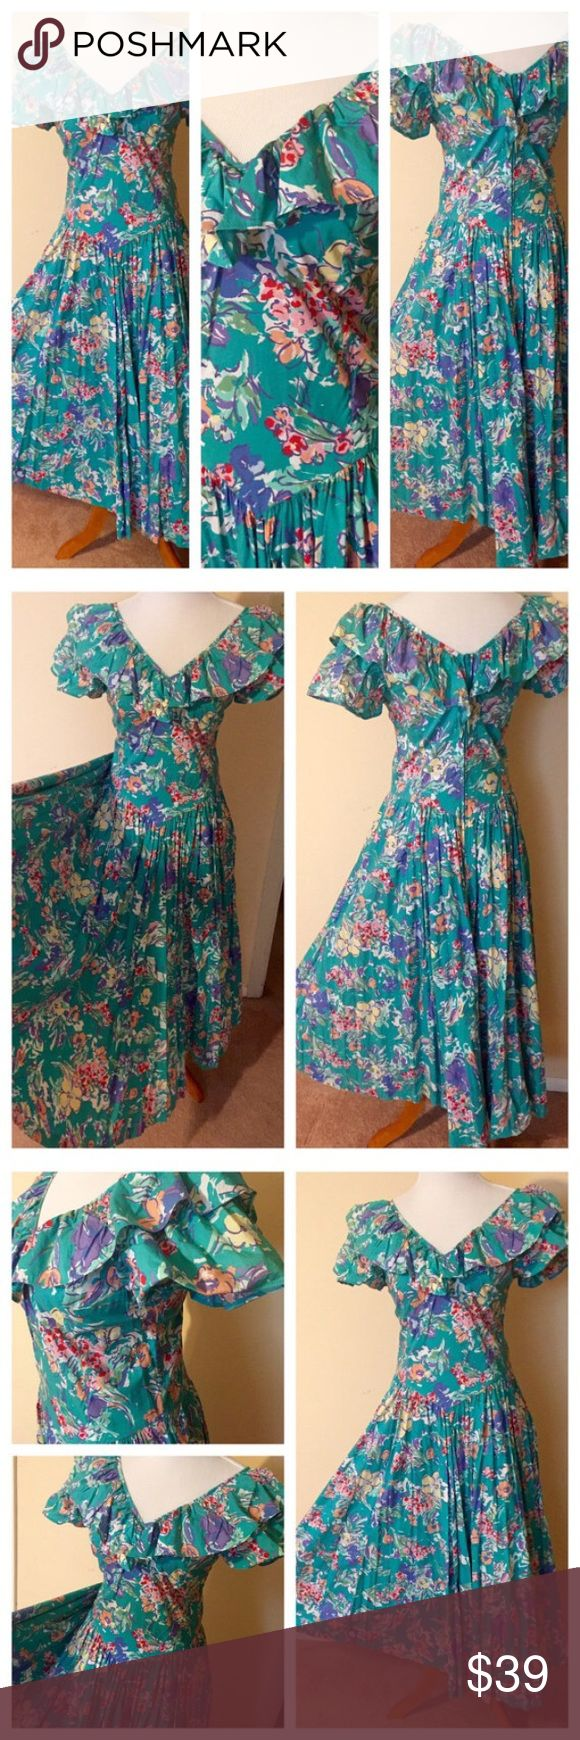 LAURA ASHLEY Green Floral Print Party Dress Sz 12 Vintage LAURA ASHLEY Green Floral Print Cotton Full Skirt Ruffle Top Garden Party Dress Sz 12. The measurements are as follow – Bust - 38 inches Waist – 32 inches Length – 50 inches Sweep – 170 inches Has pockets.  Thanks for looking! 031117-1 Dresses